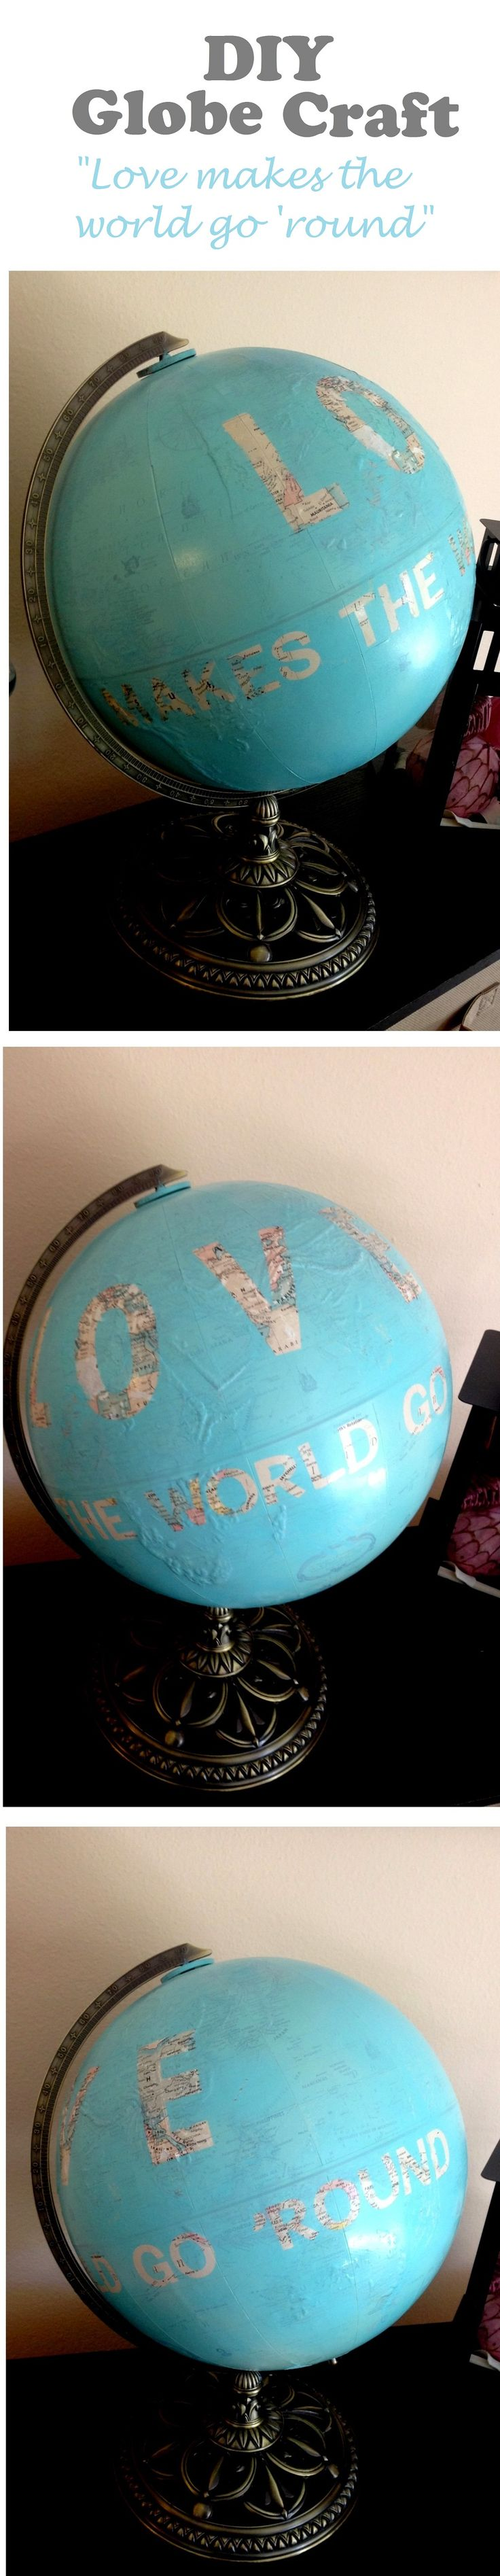 DIY world globe craft- click for tutorial!